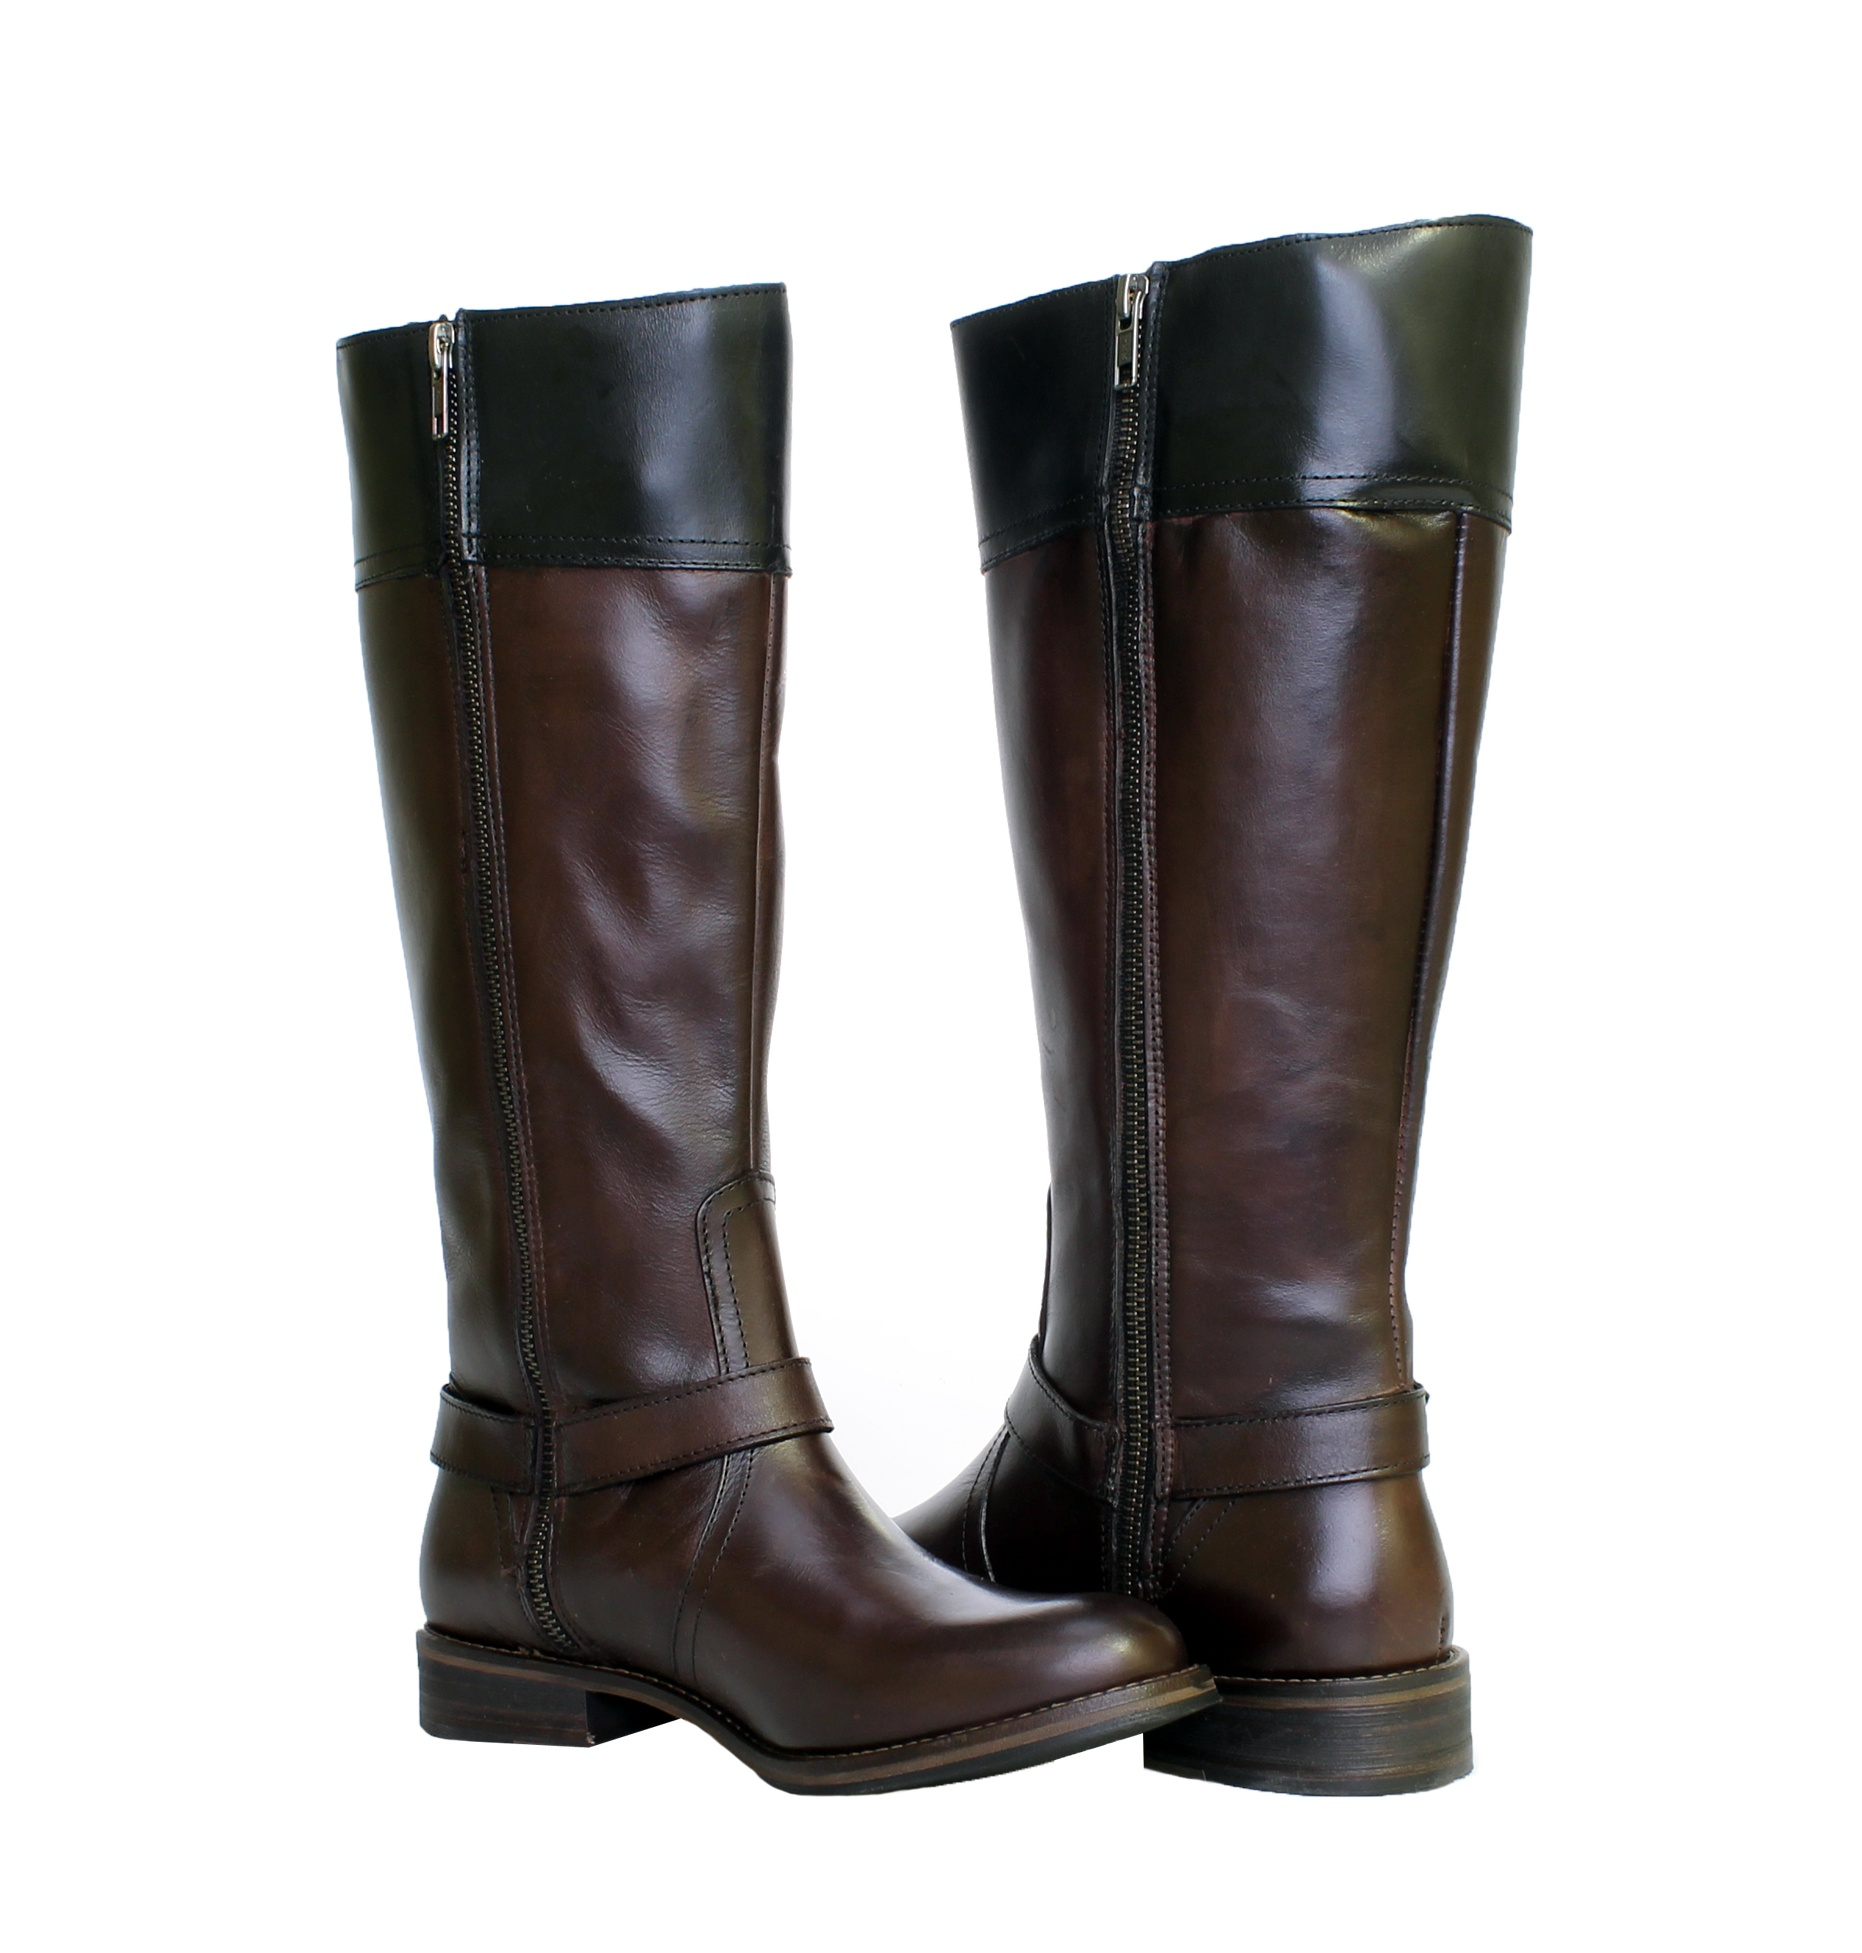 1883 by Wolverine Shannon Dark Brown Women's Riding Boots W40090 by 1883 by Wolverine